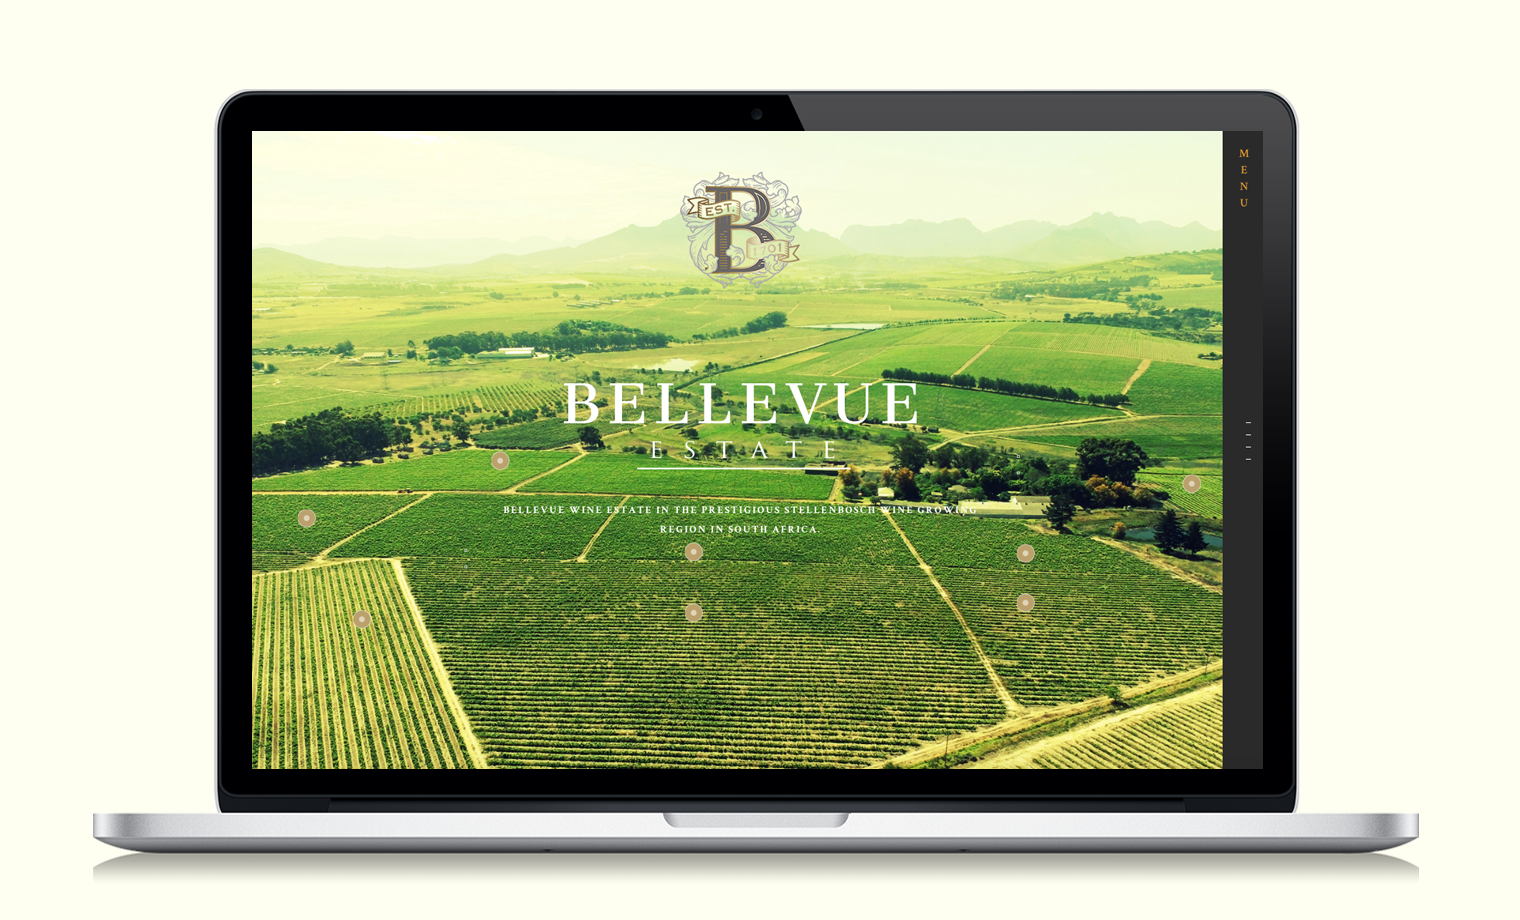 Bellevue wine estate website